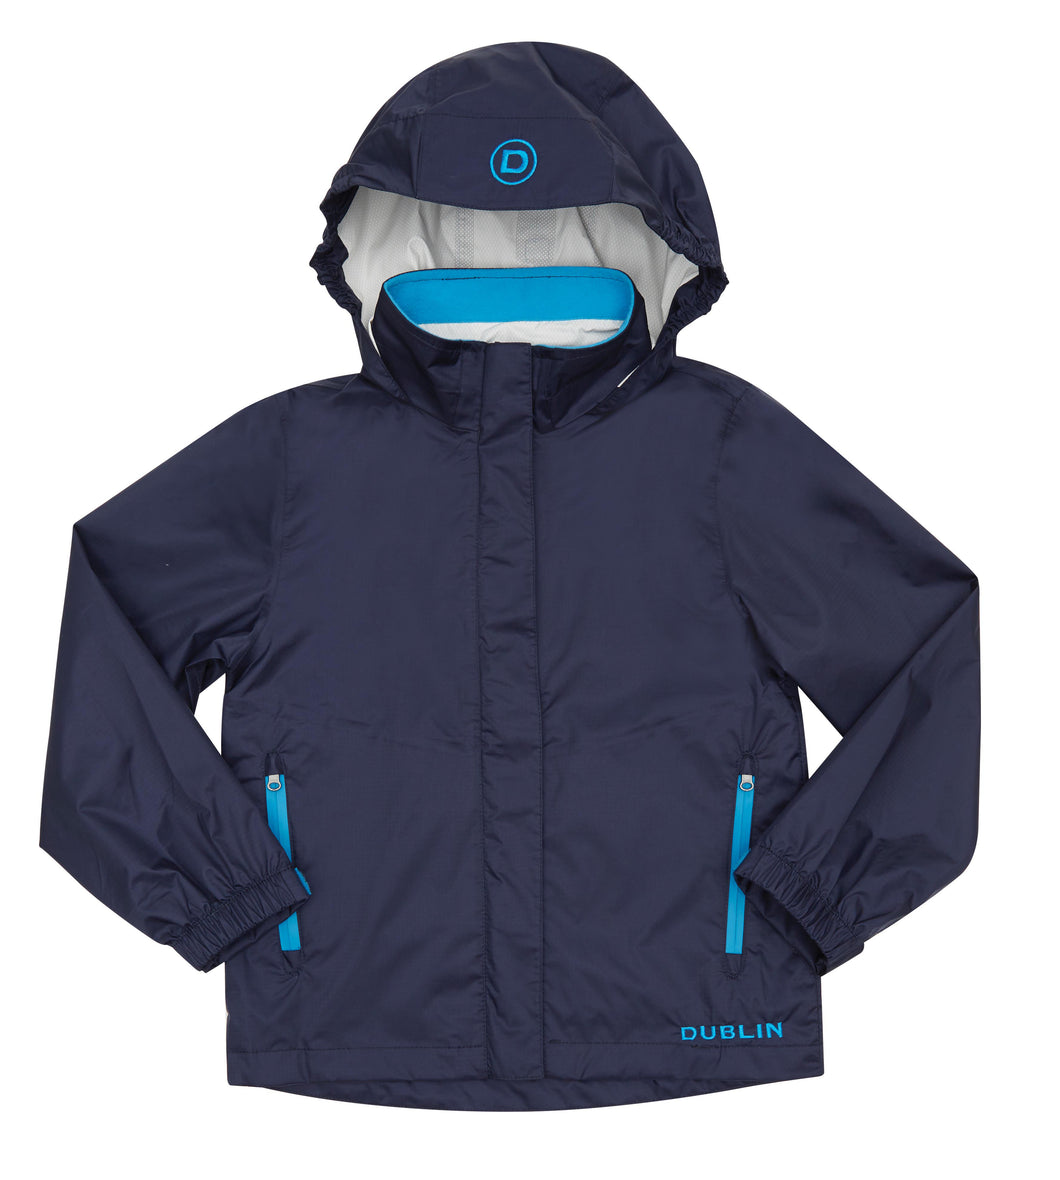 Dublin Kalix Waterproof Child's Jacket